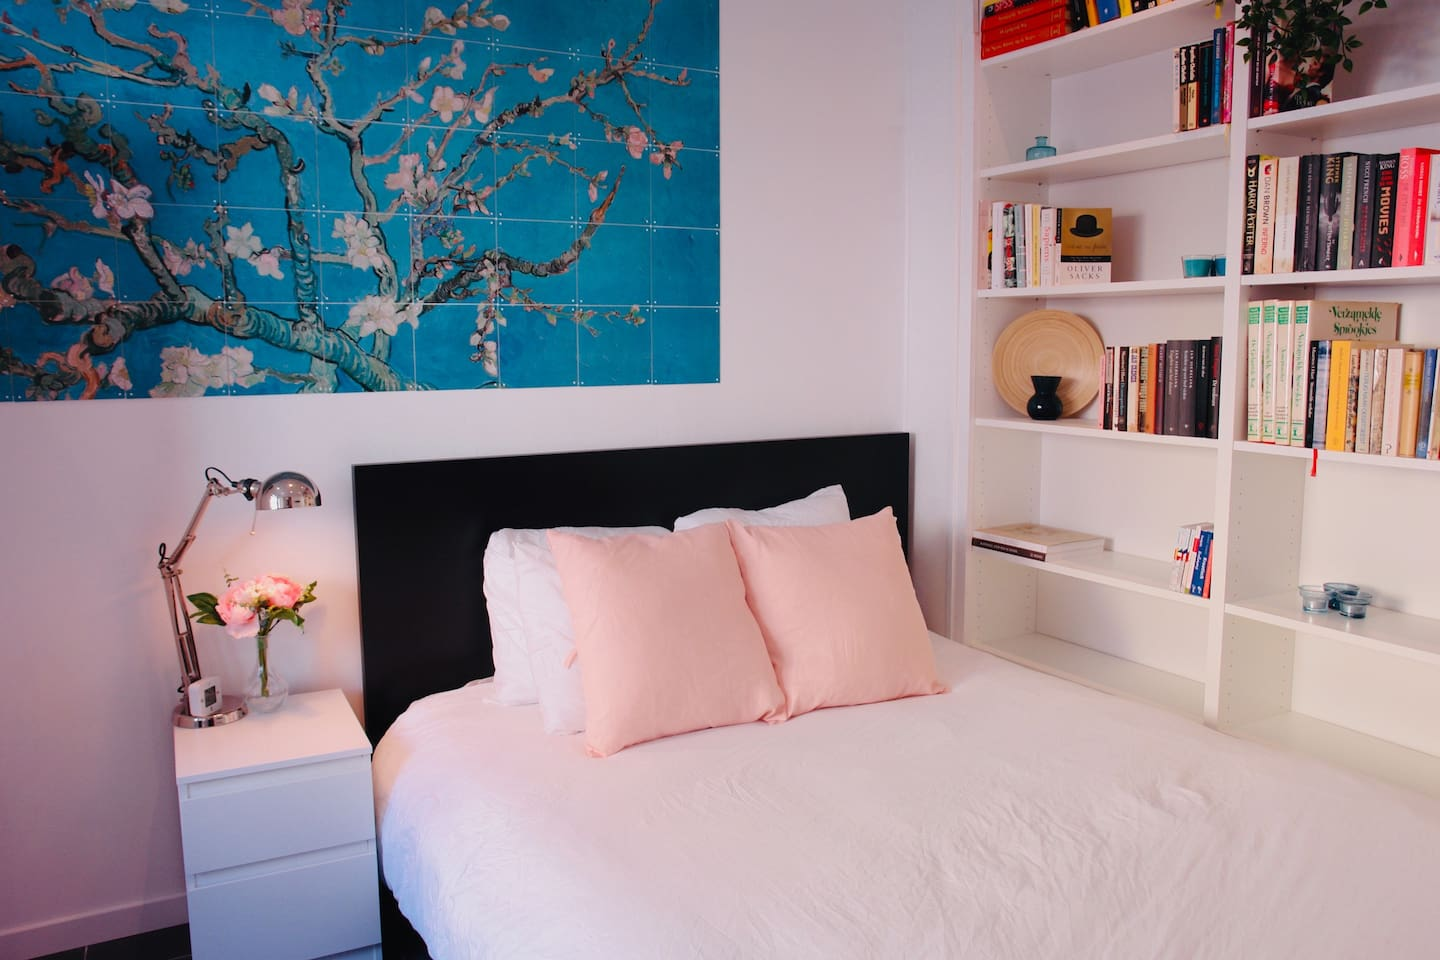 The bedroom has a cozy 160 cm bed with lots of books to read.